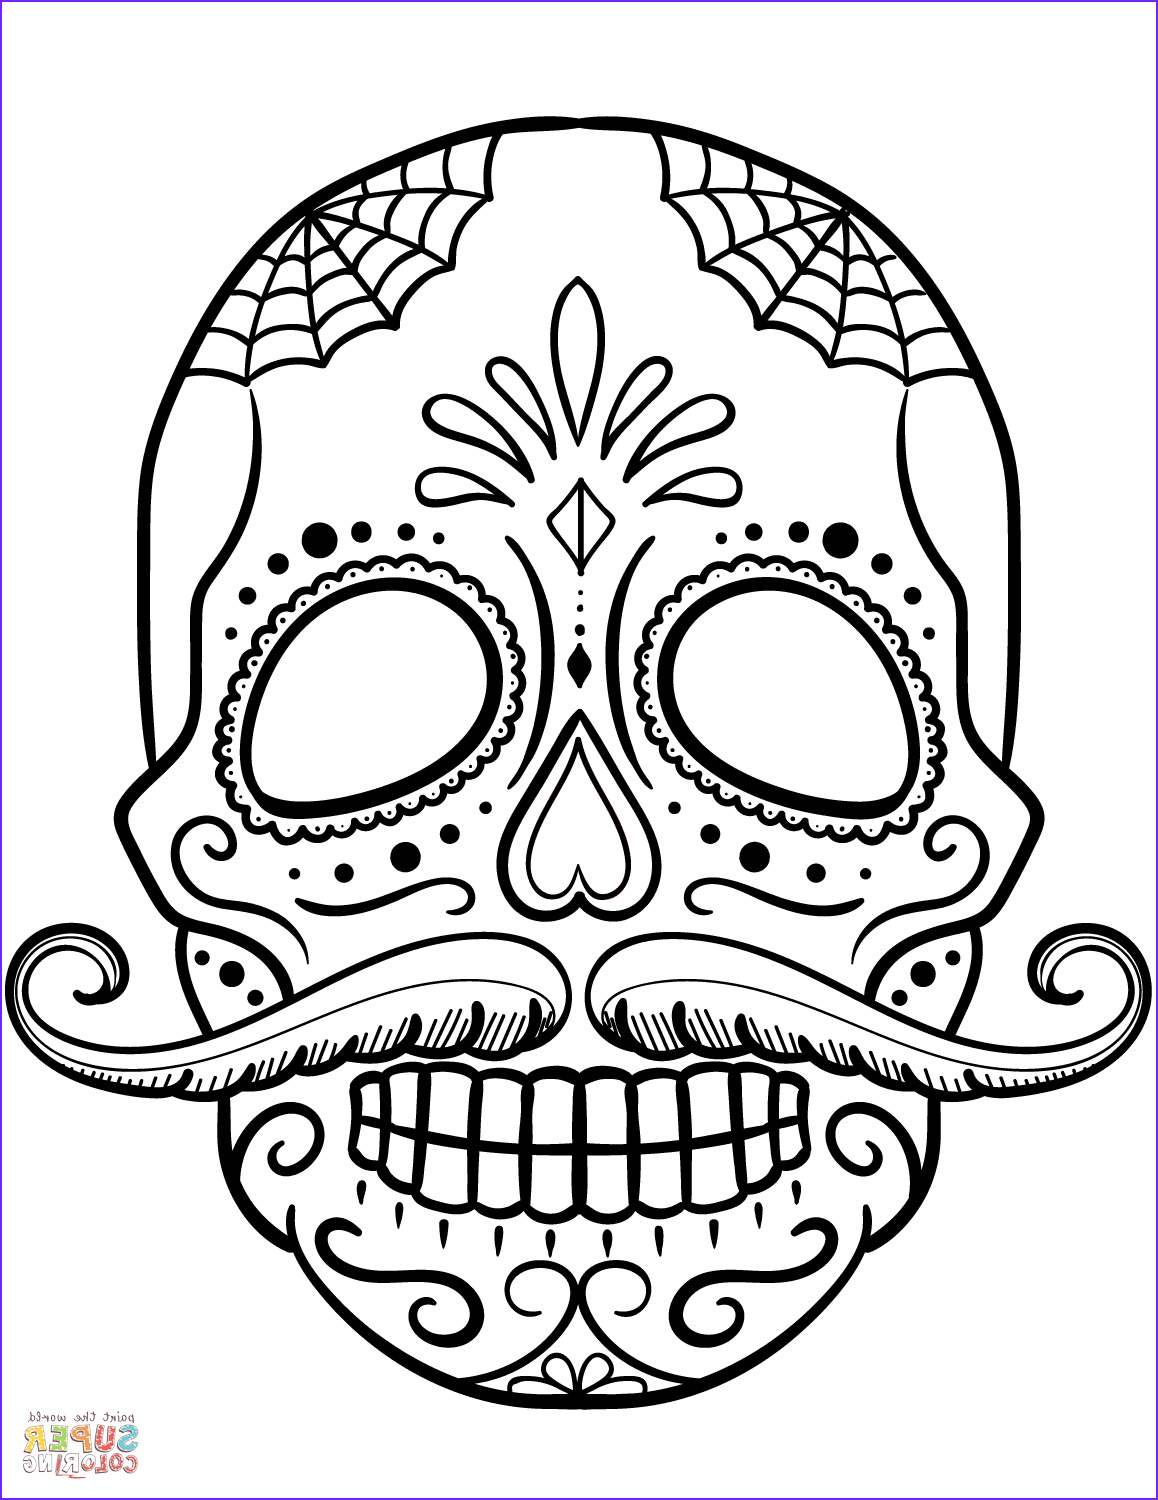 Sugar Skull Coloring Pages Awesome Images Sugar Skull with Mustache Coloring Page